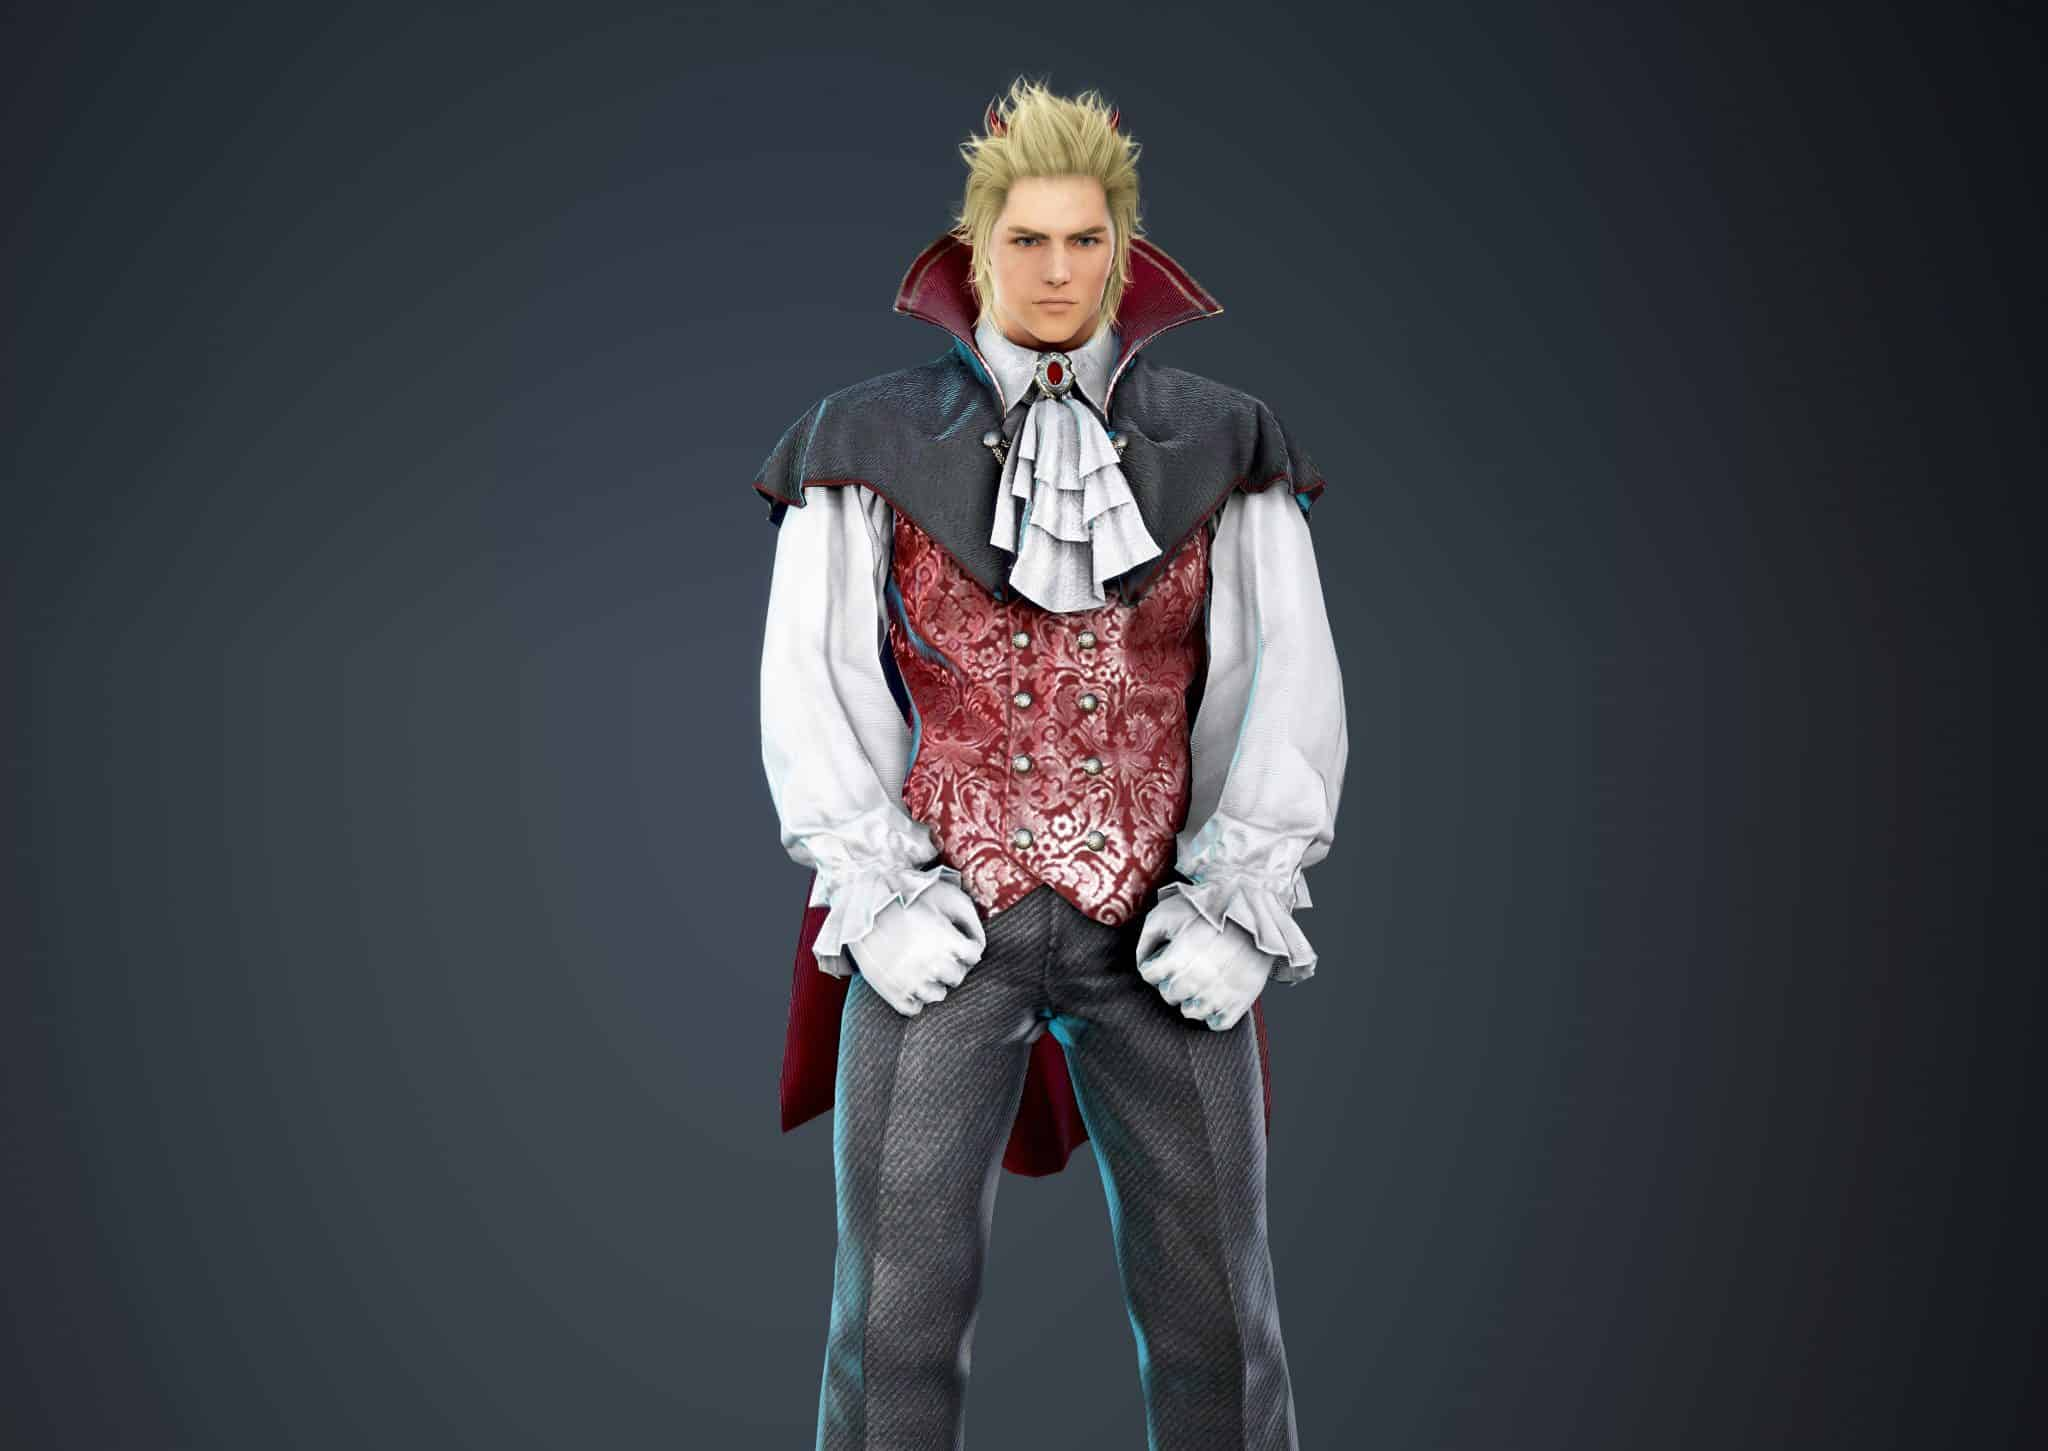 Striker Bloody Suit, Bloody Outfit Set, Halloween 2018, Black Desert Online